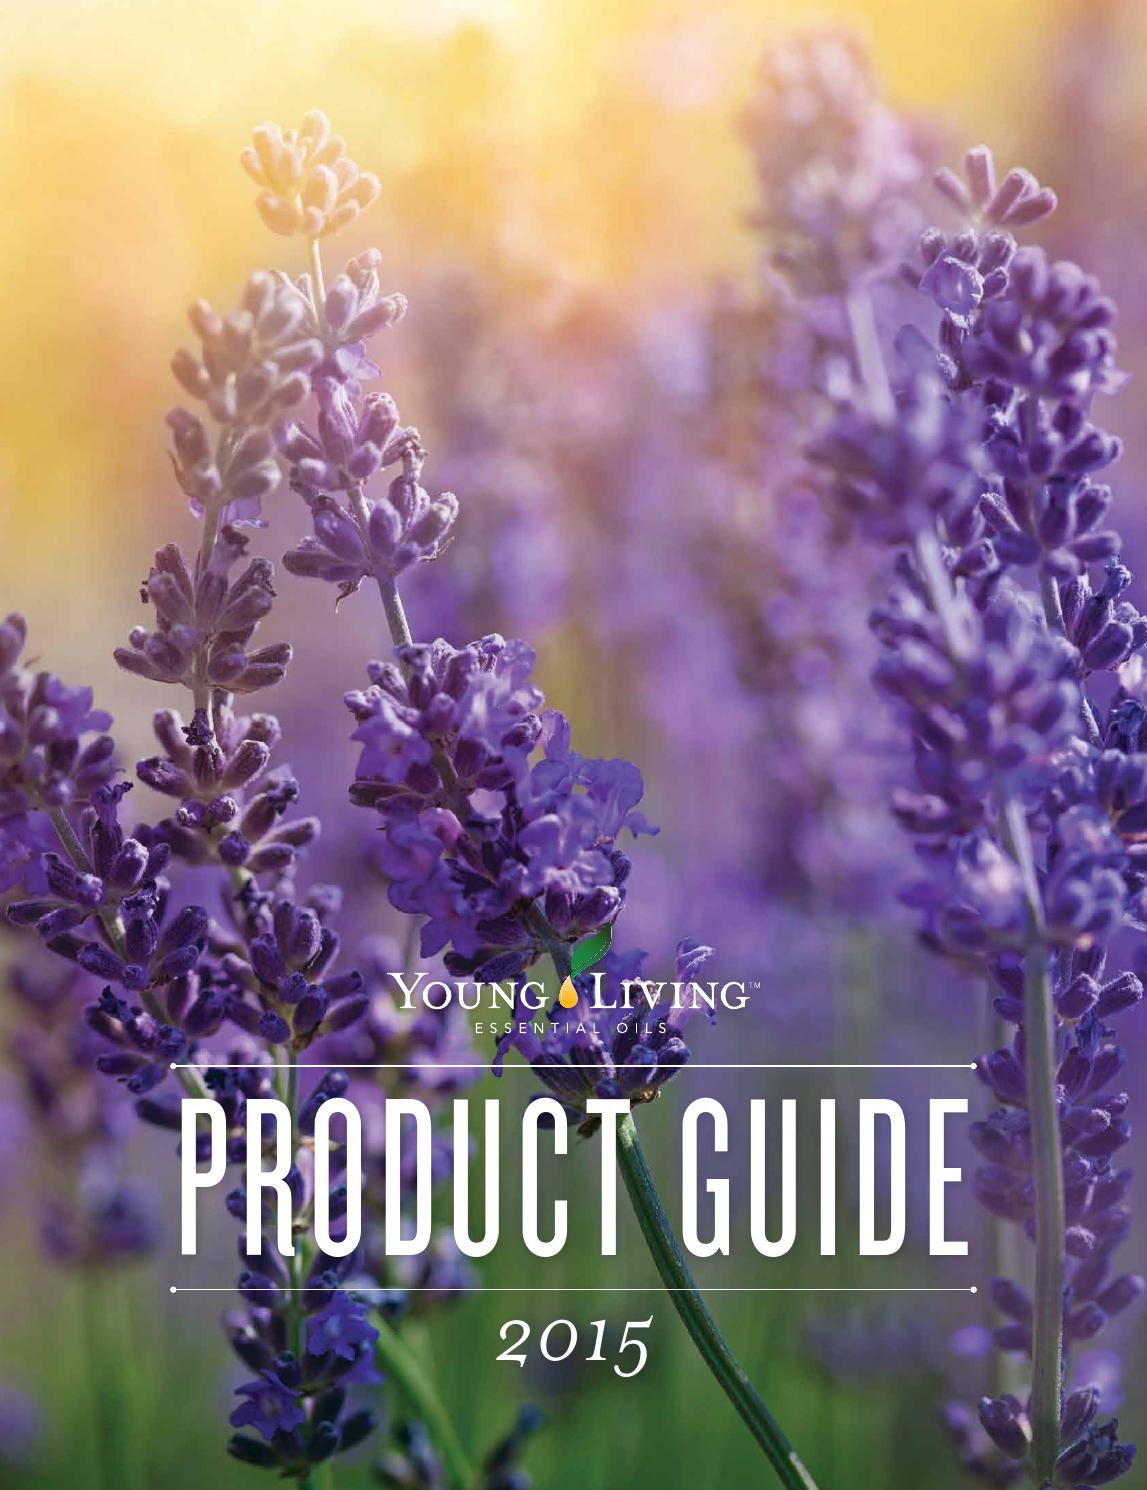 Usa Product Guide By Lavender Stream Young Living Essential Oils Issuu Evergreen Reed Diffuser Set Serenity Dream 30 Ml